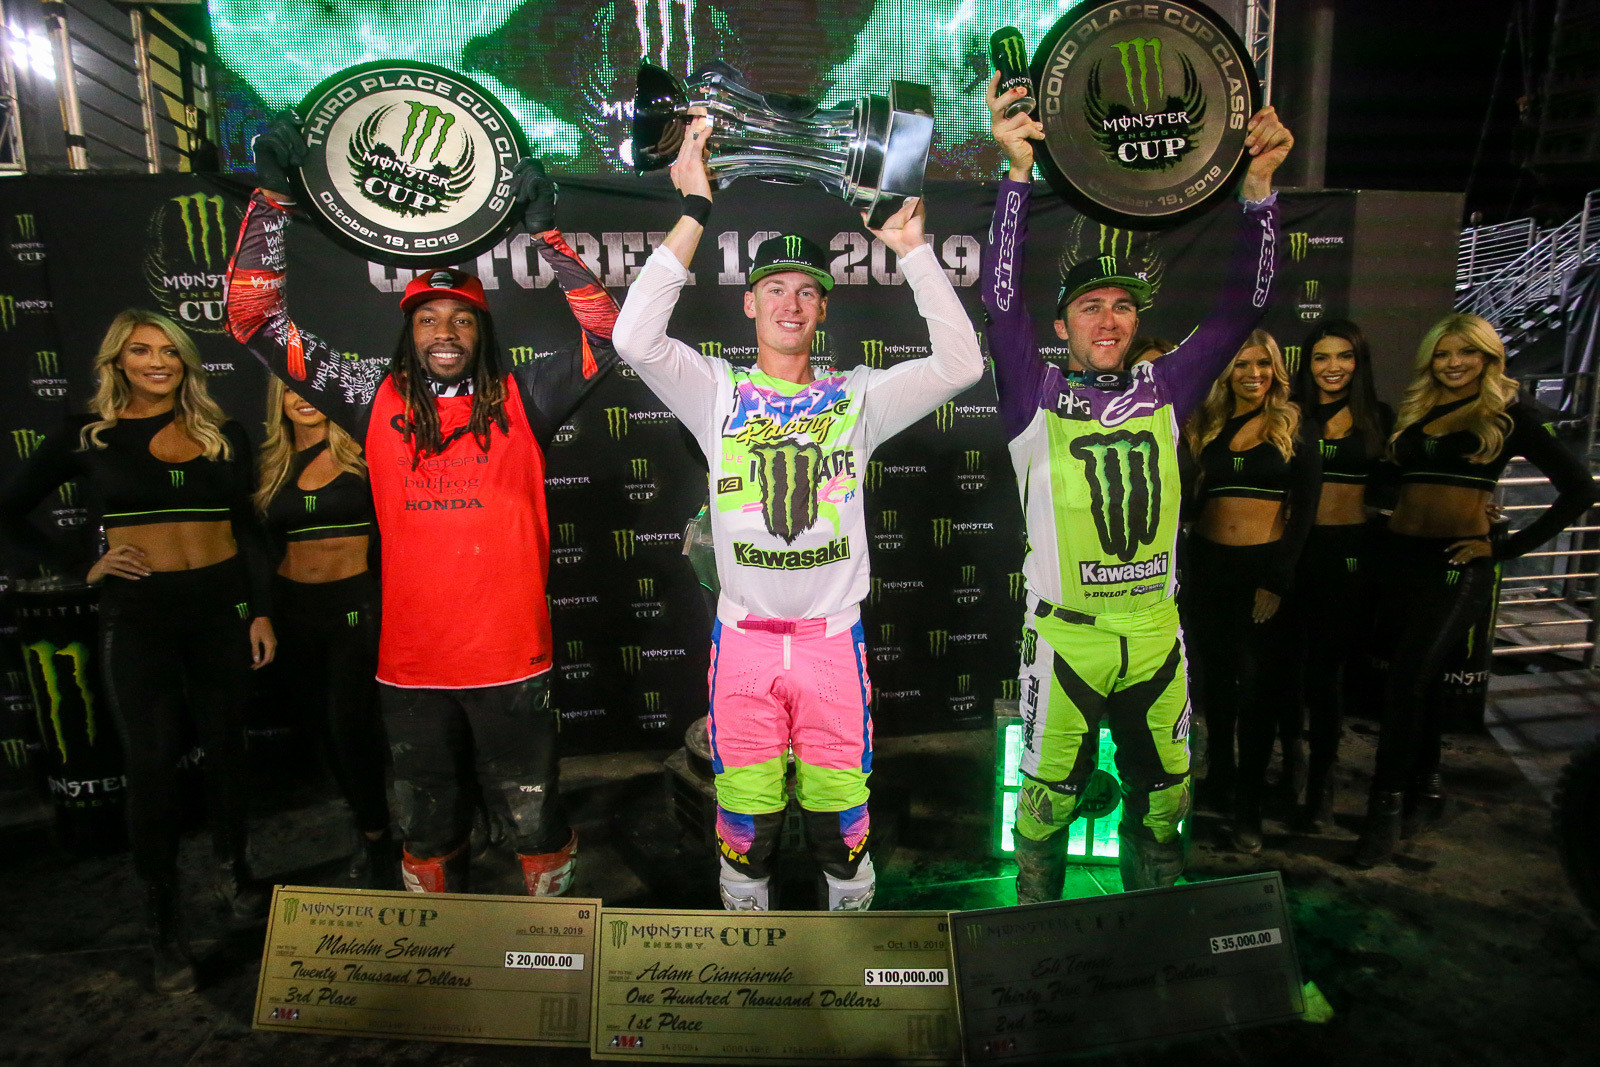 We're expecting to see quite a few riders vying for podium spots this year.